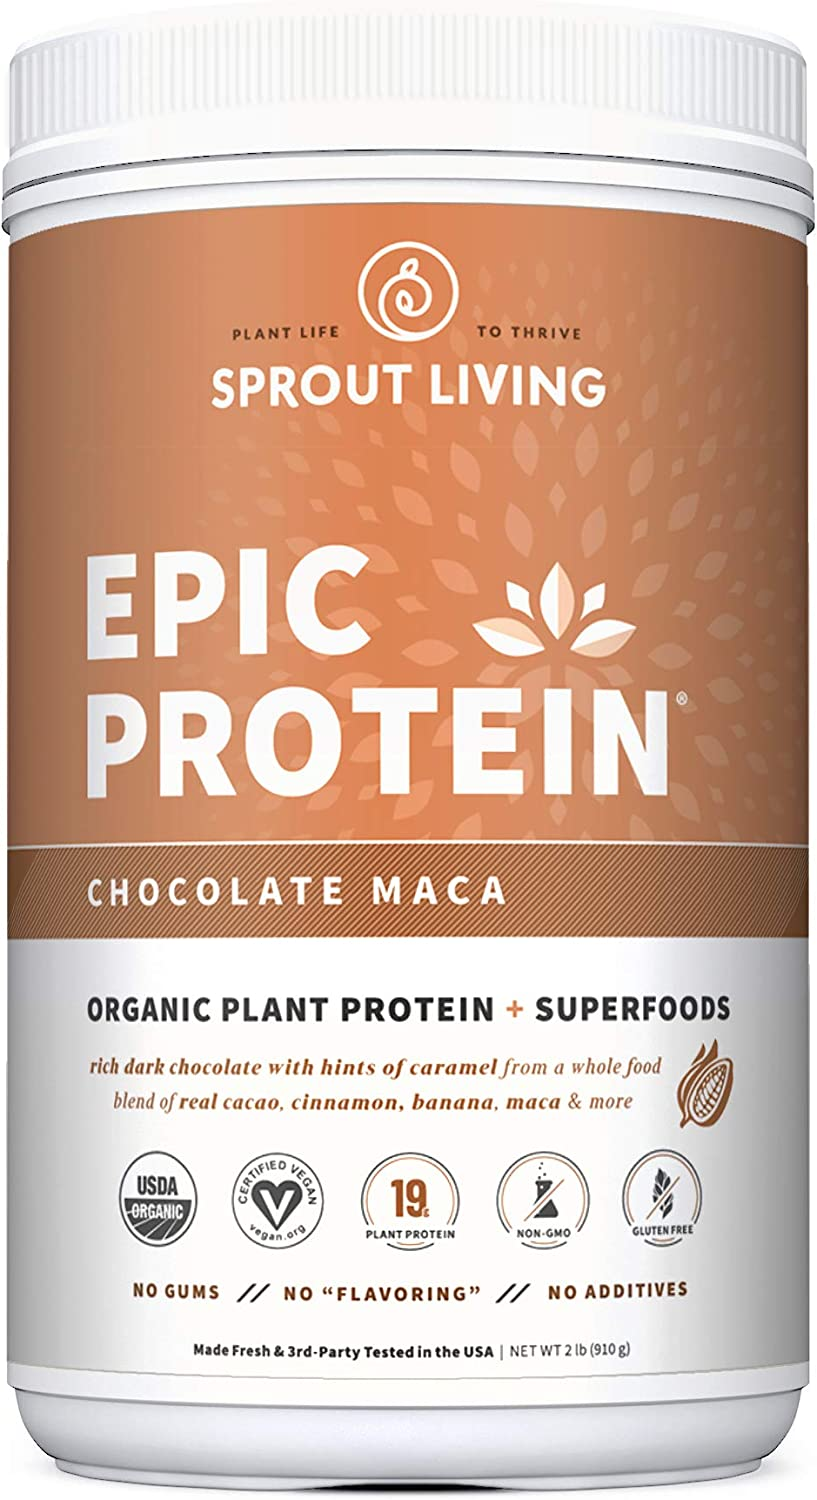 Epic Protein, Organic Plant Protein + Superfoods, Chocolate Maca | 19 Grams Vegan Protein, Gluten Free, No Gums, No Flavoring (2 Pound, 26 Servings)